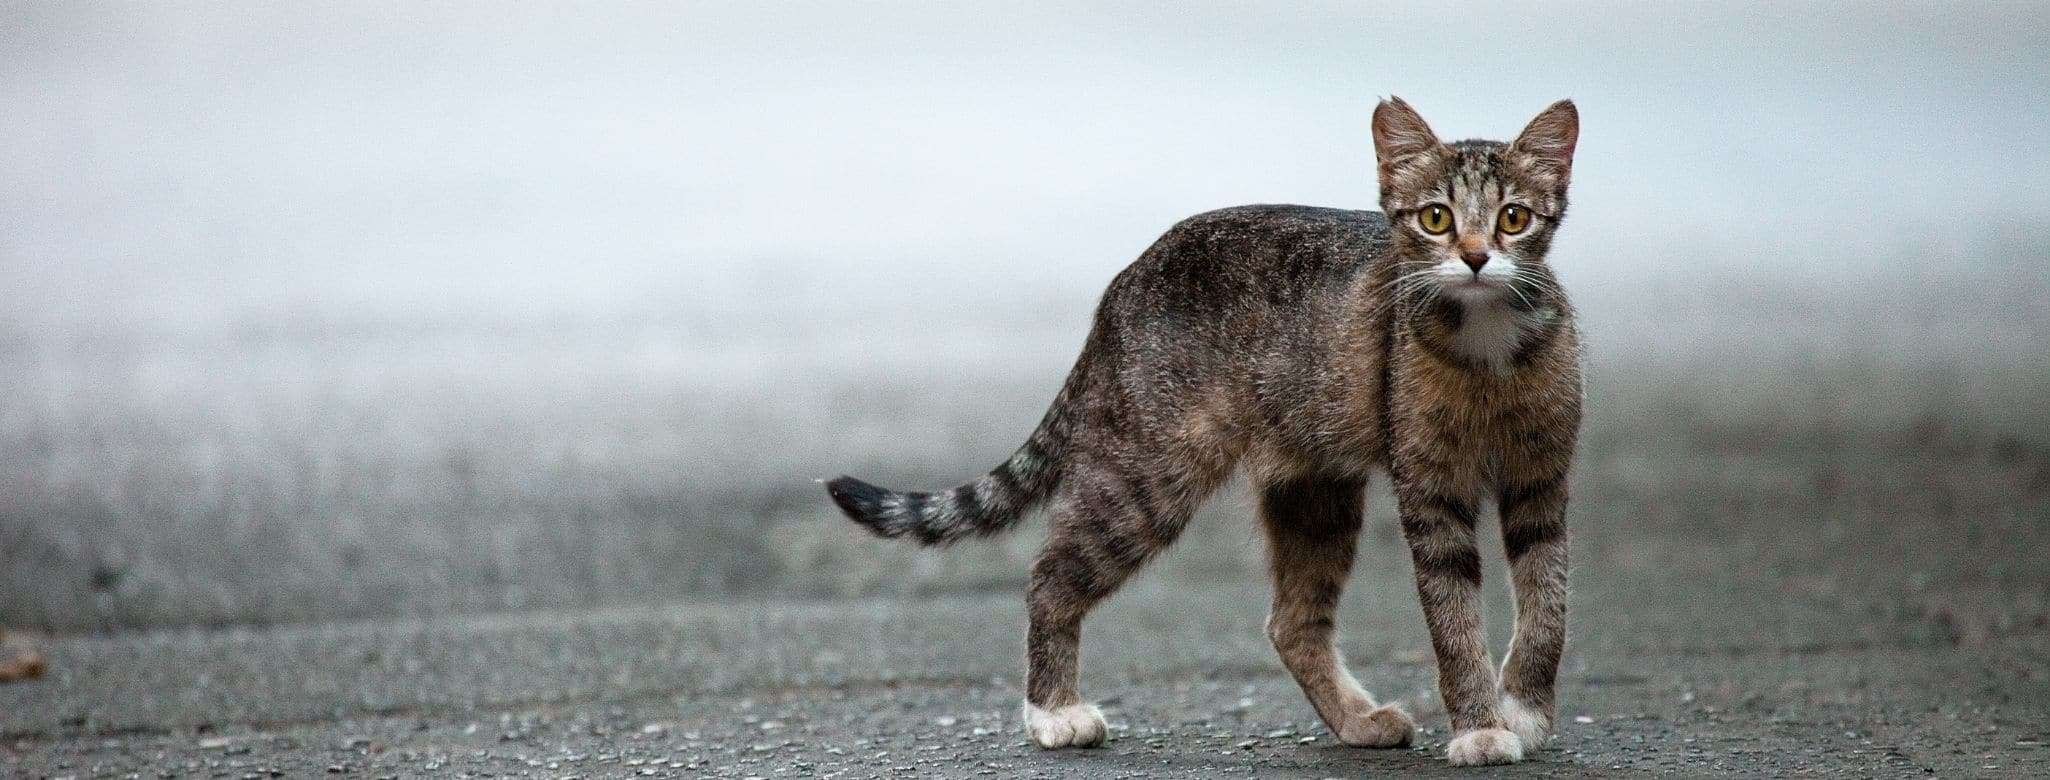 A cat with a curved tail